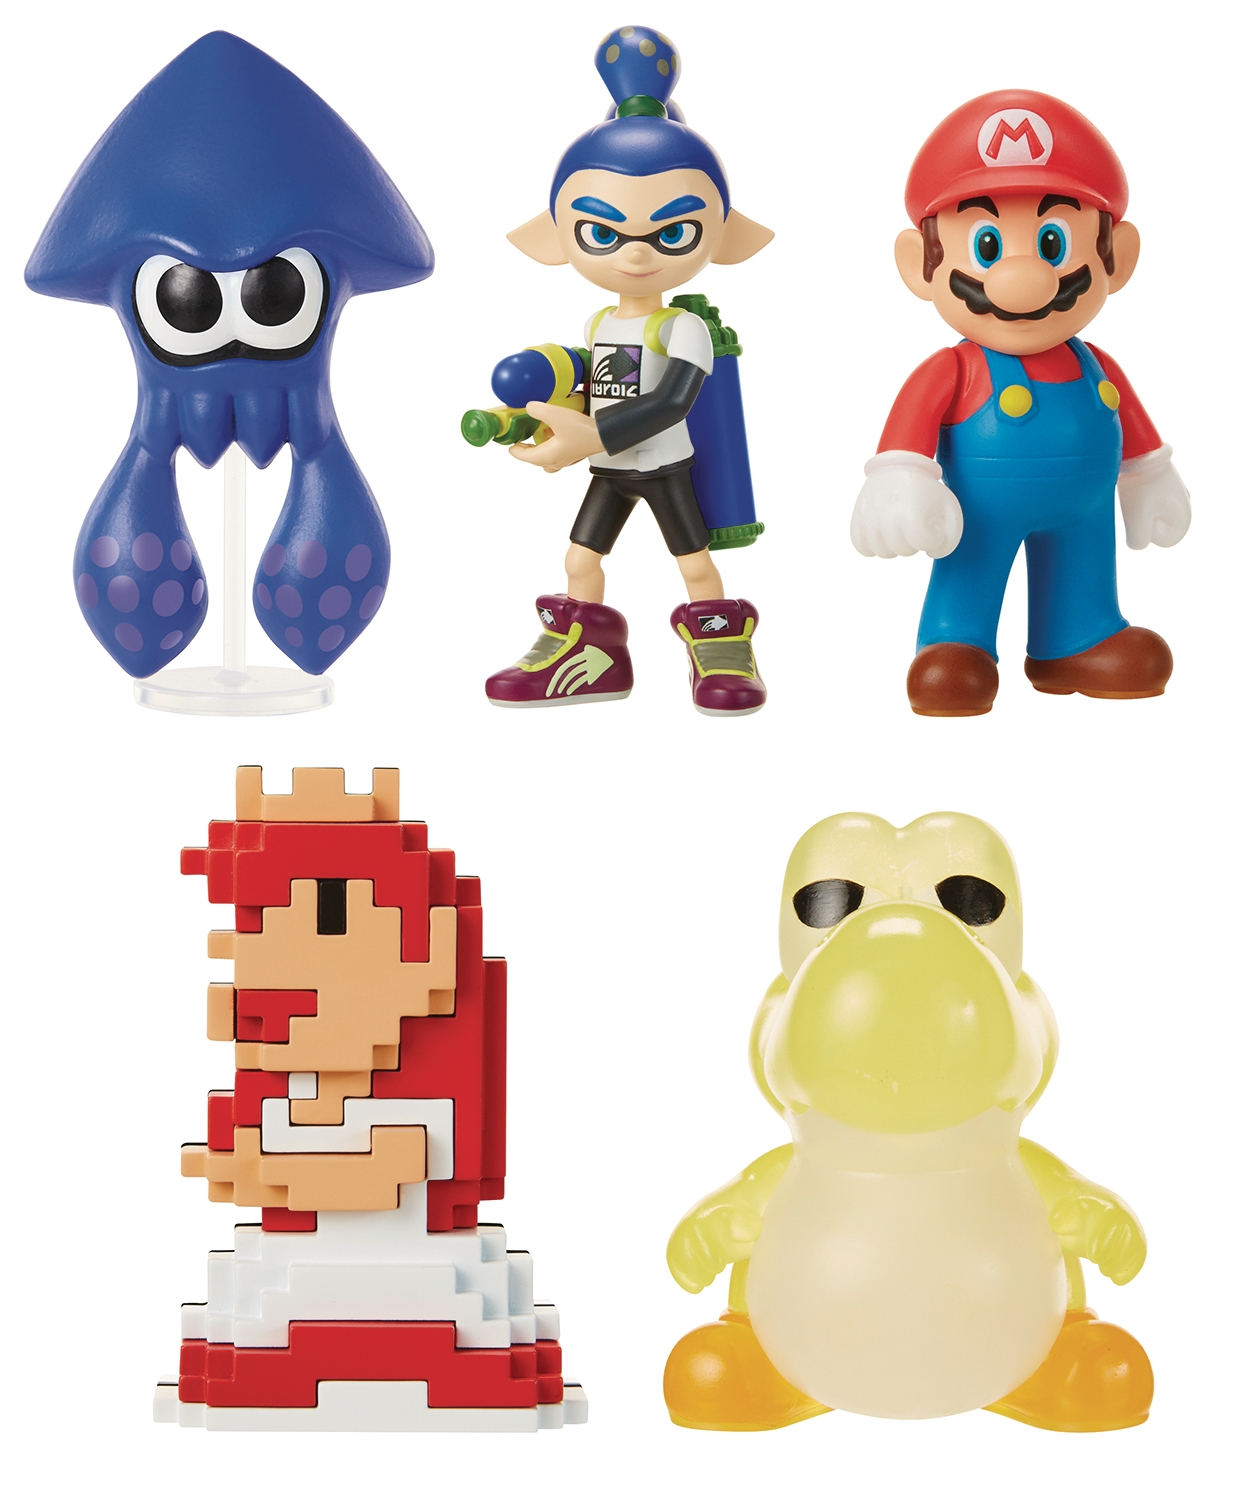 "Nintendo 2.5"" PVC Figures Wave 13: Blue Inkling Boy"